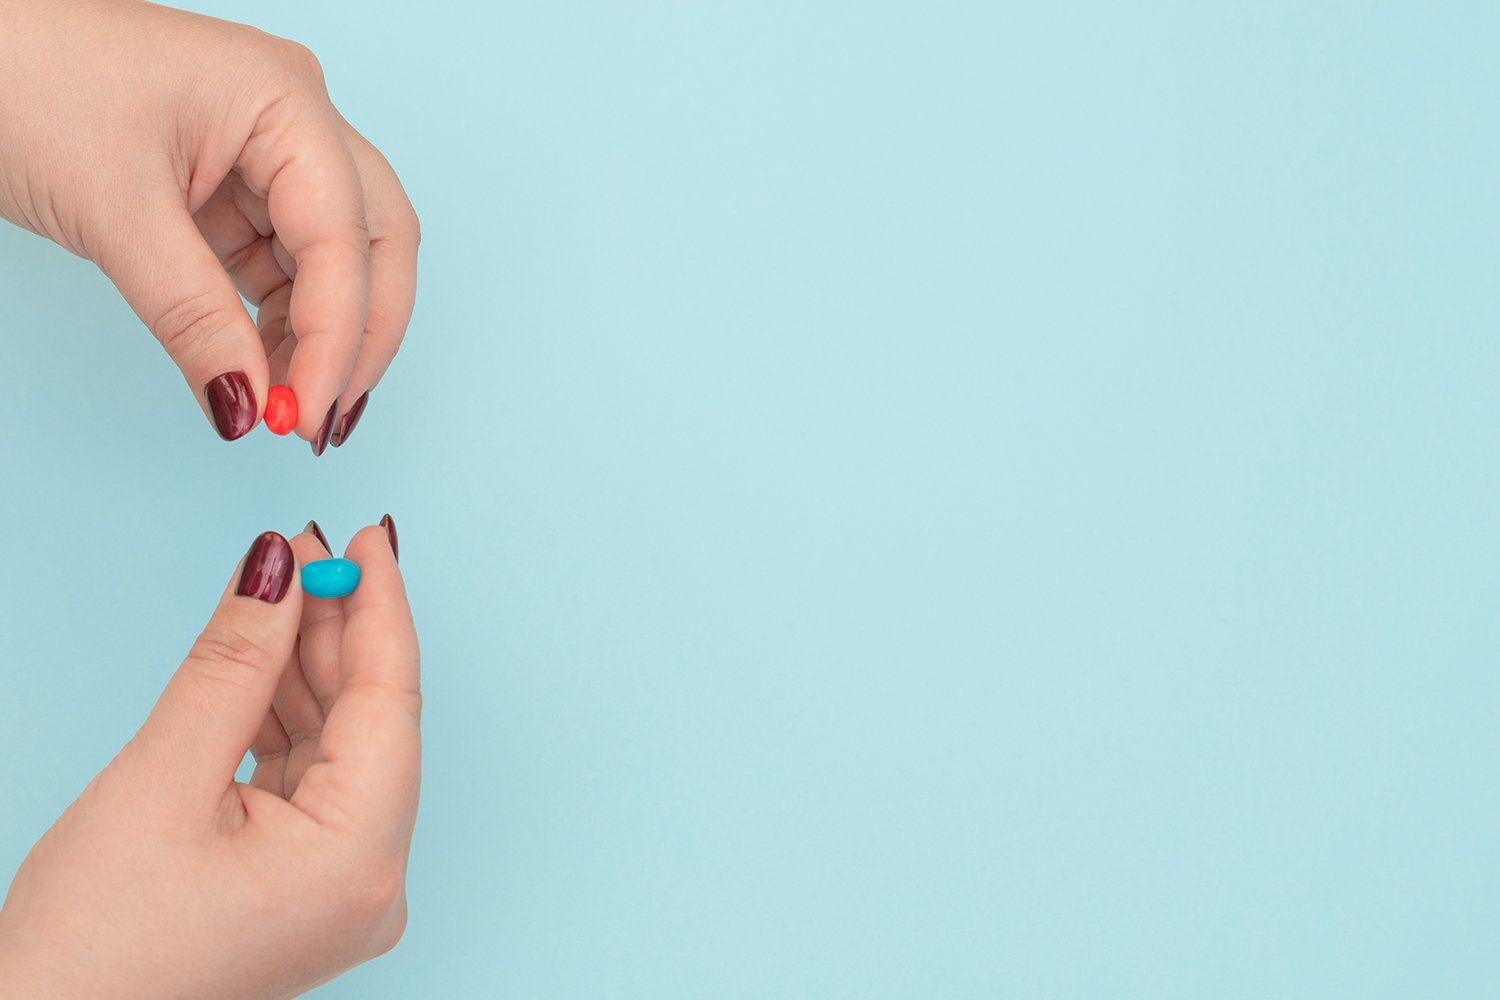 Red and blue pills on female hands on blue background example image 1